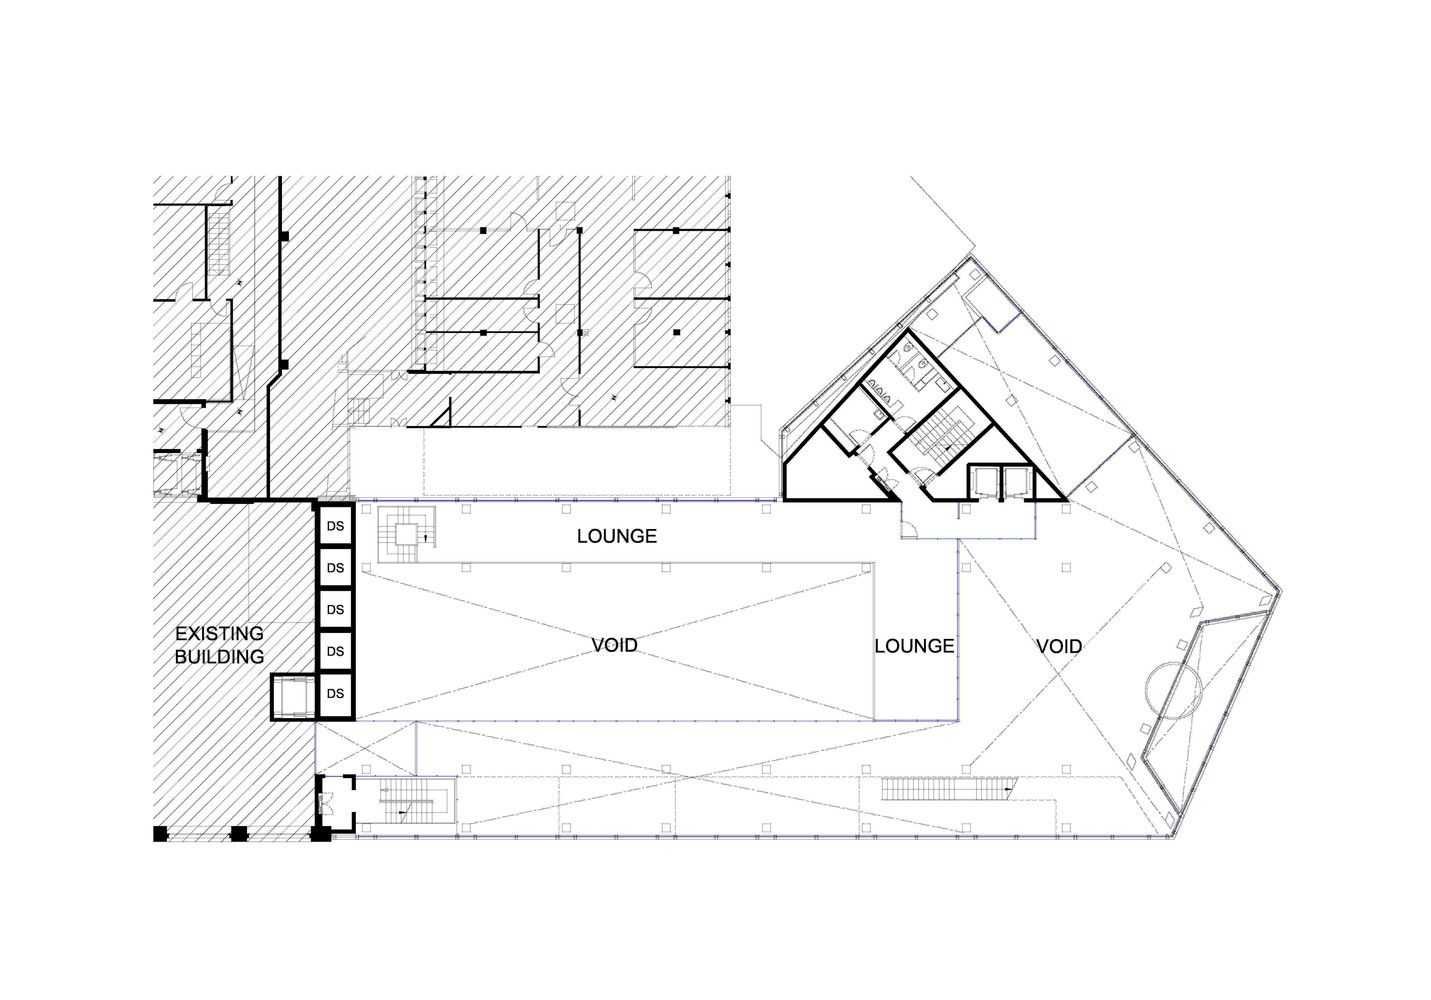 Mezzanine Floor Plans gallery of tamedia office building / shigeru ban architects - 39